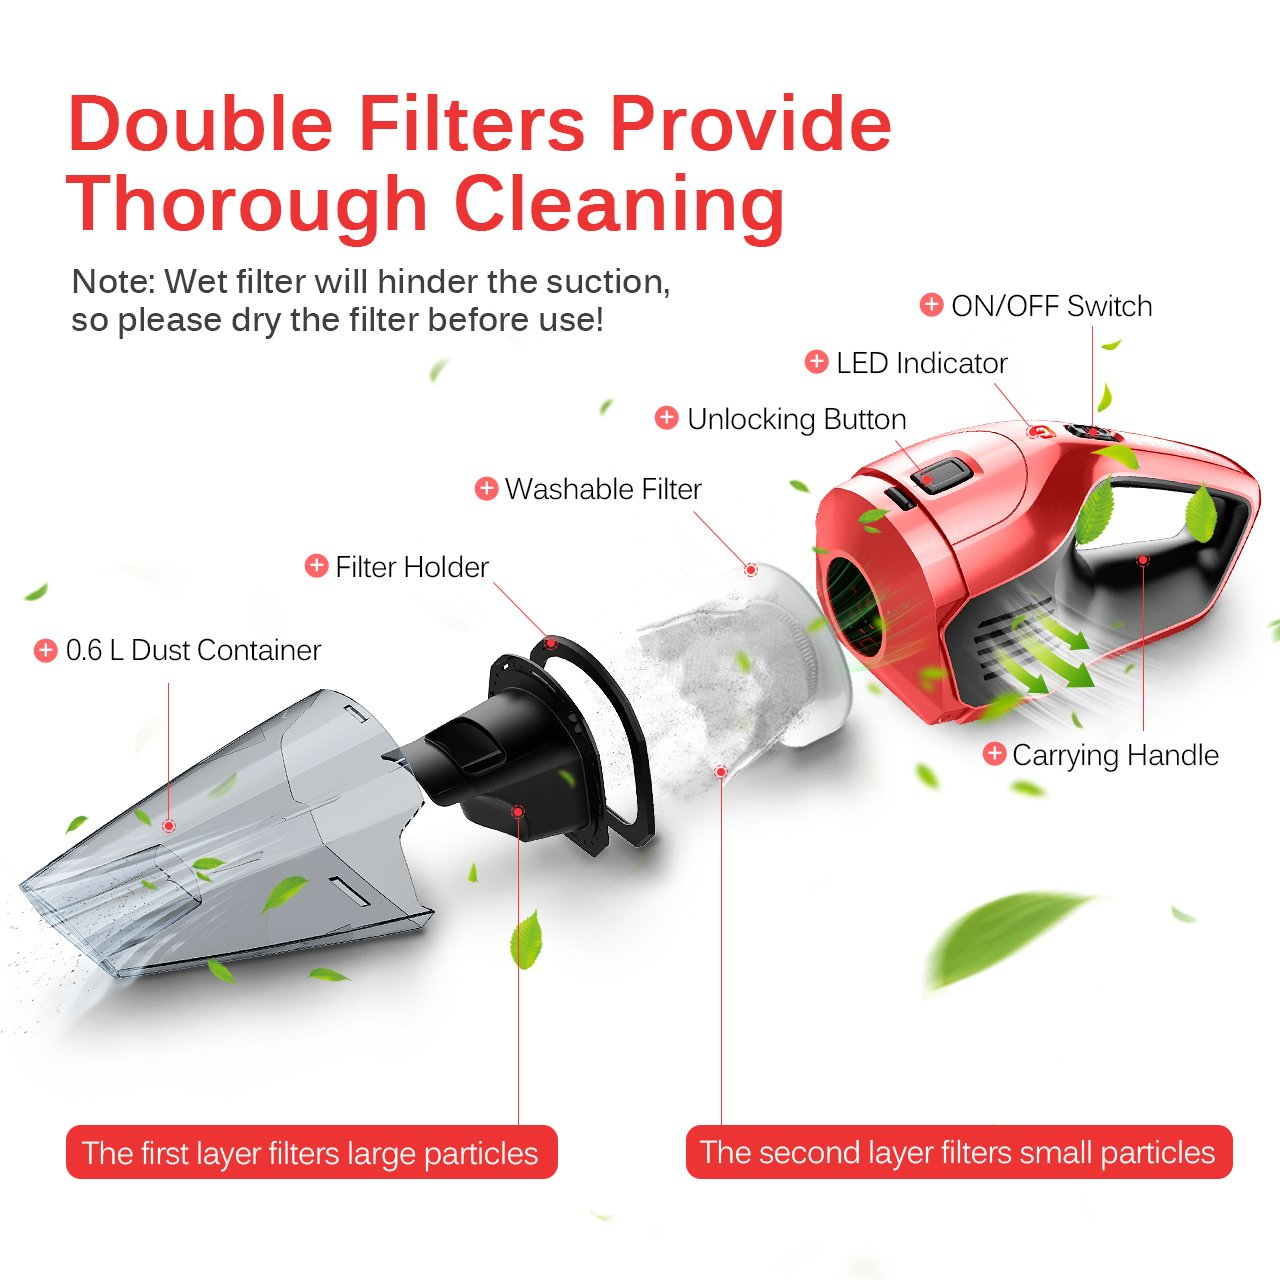 HoLife Handheld Vacuum 14.8V Hand Cordless Portable Pet Hair Home and Car Cleaning, min, Red by HoLife (Image #2)